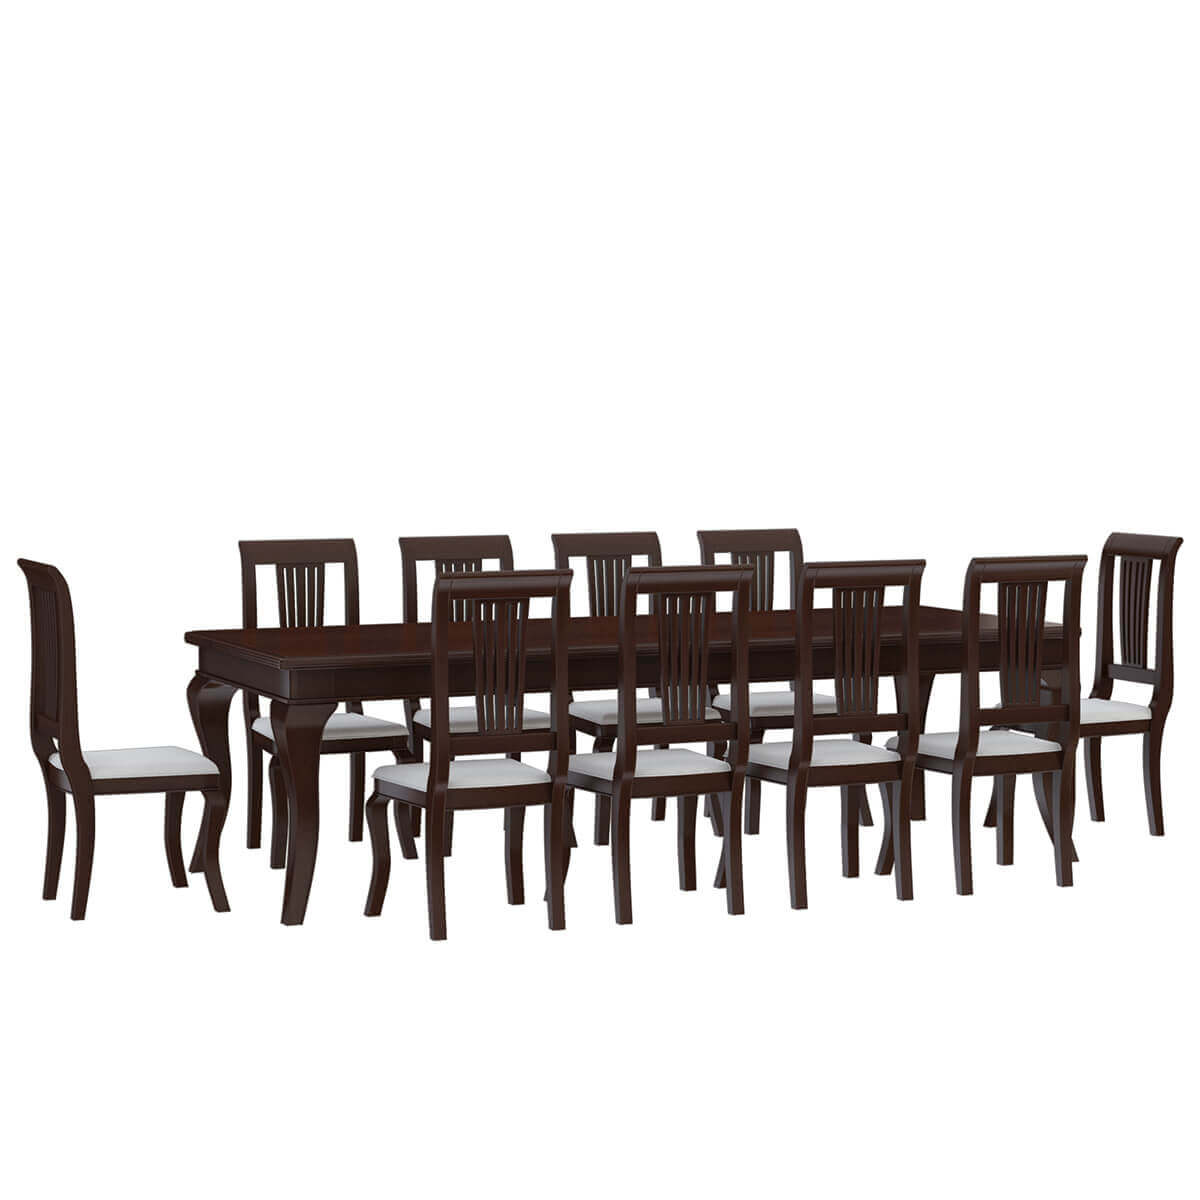 Cromberg Solid Mahogany Wood Dining Table and Chair Set